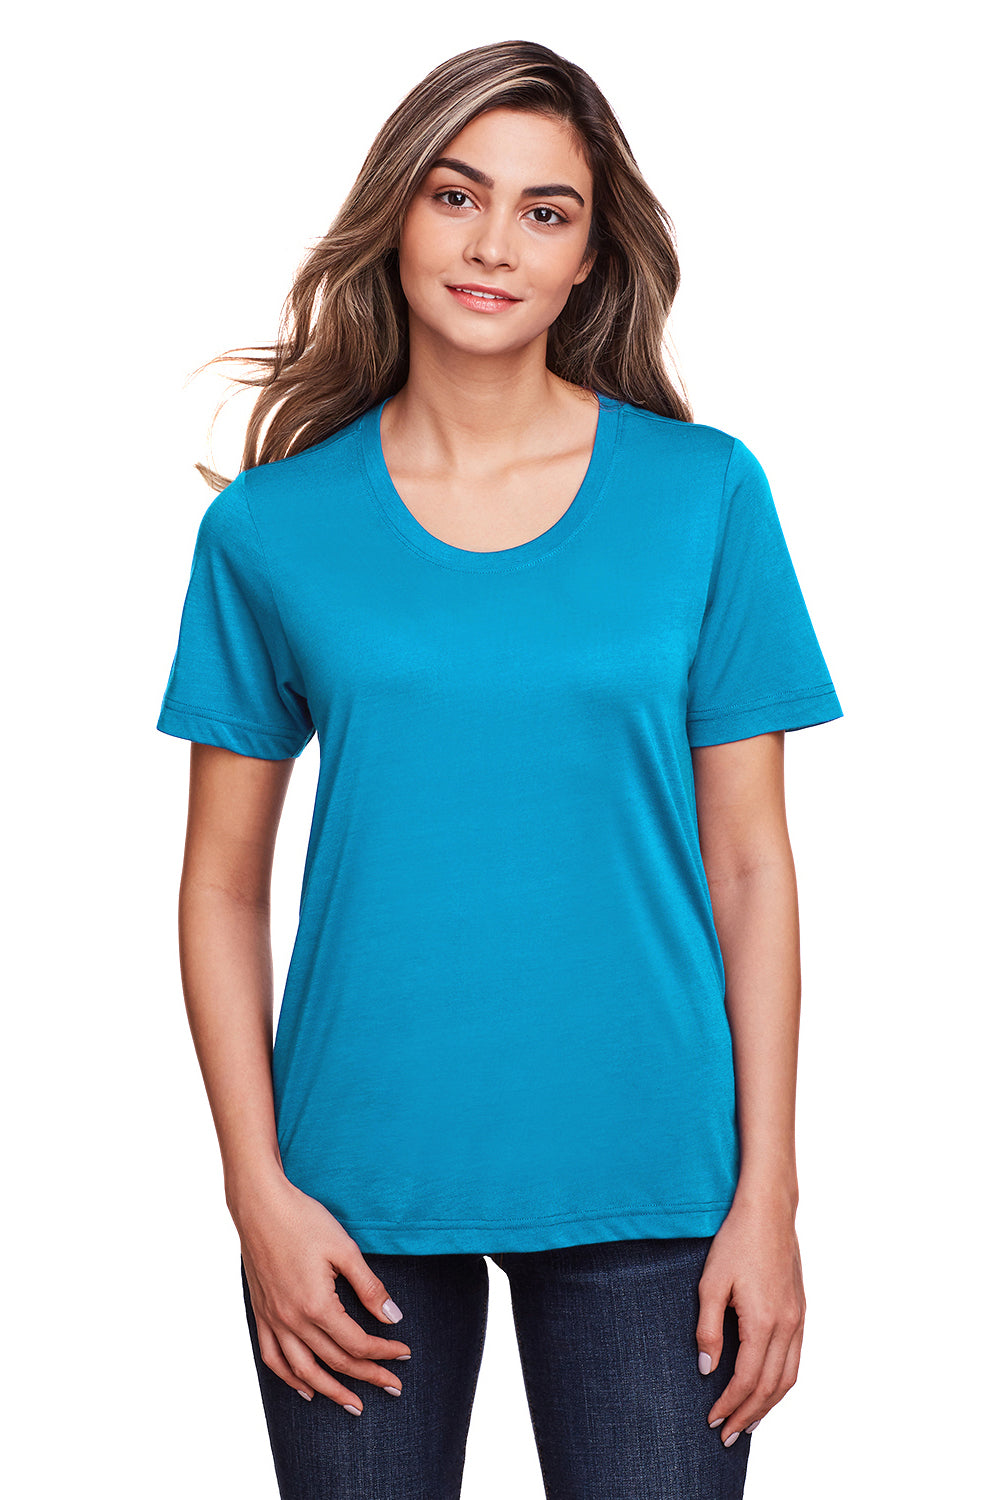 Core 365 CE111W Womens Fusion ChromaSoft Performance Moisture Wicking Short Sleeve Scoop Neck T-Shirt Electric Blue Front